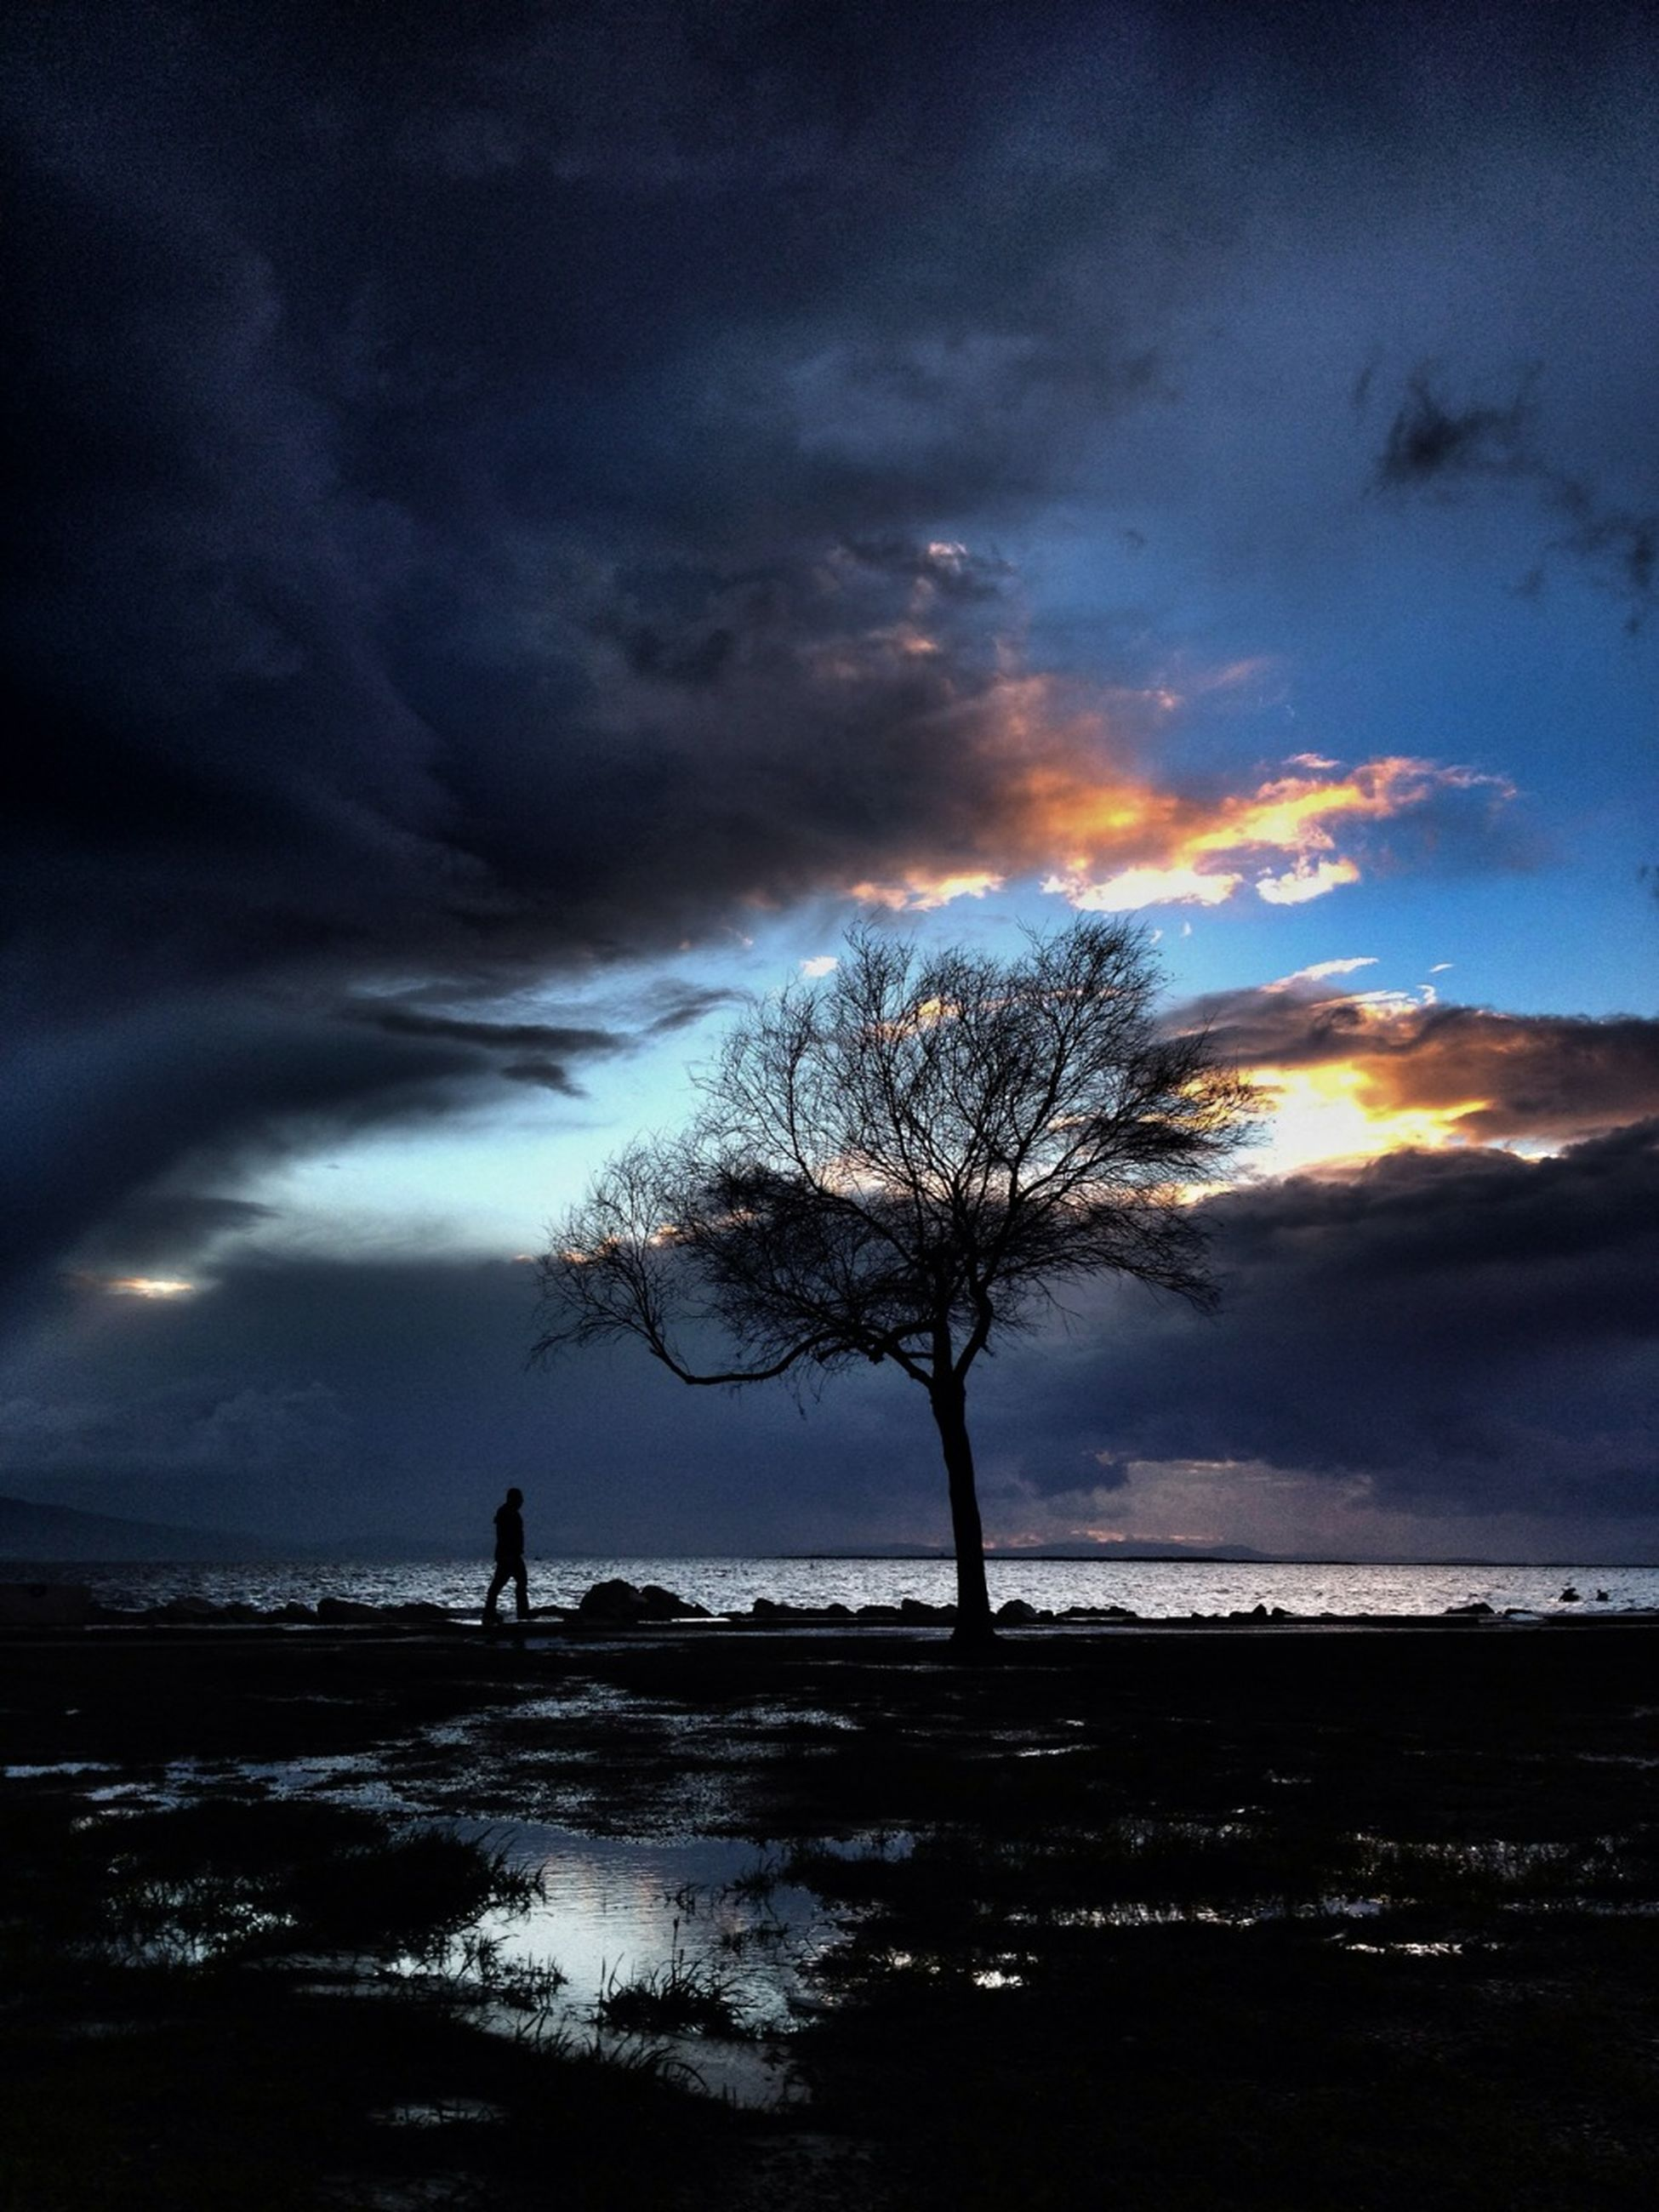 silhouette, sky, tranquility, tranquil scene, scenics, beauty in nature, cloud - sky, tree, sunset, water, nature, cloud, bare tree, idyllic, cloudy, landscape, outline, dusk, outdoors, lake